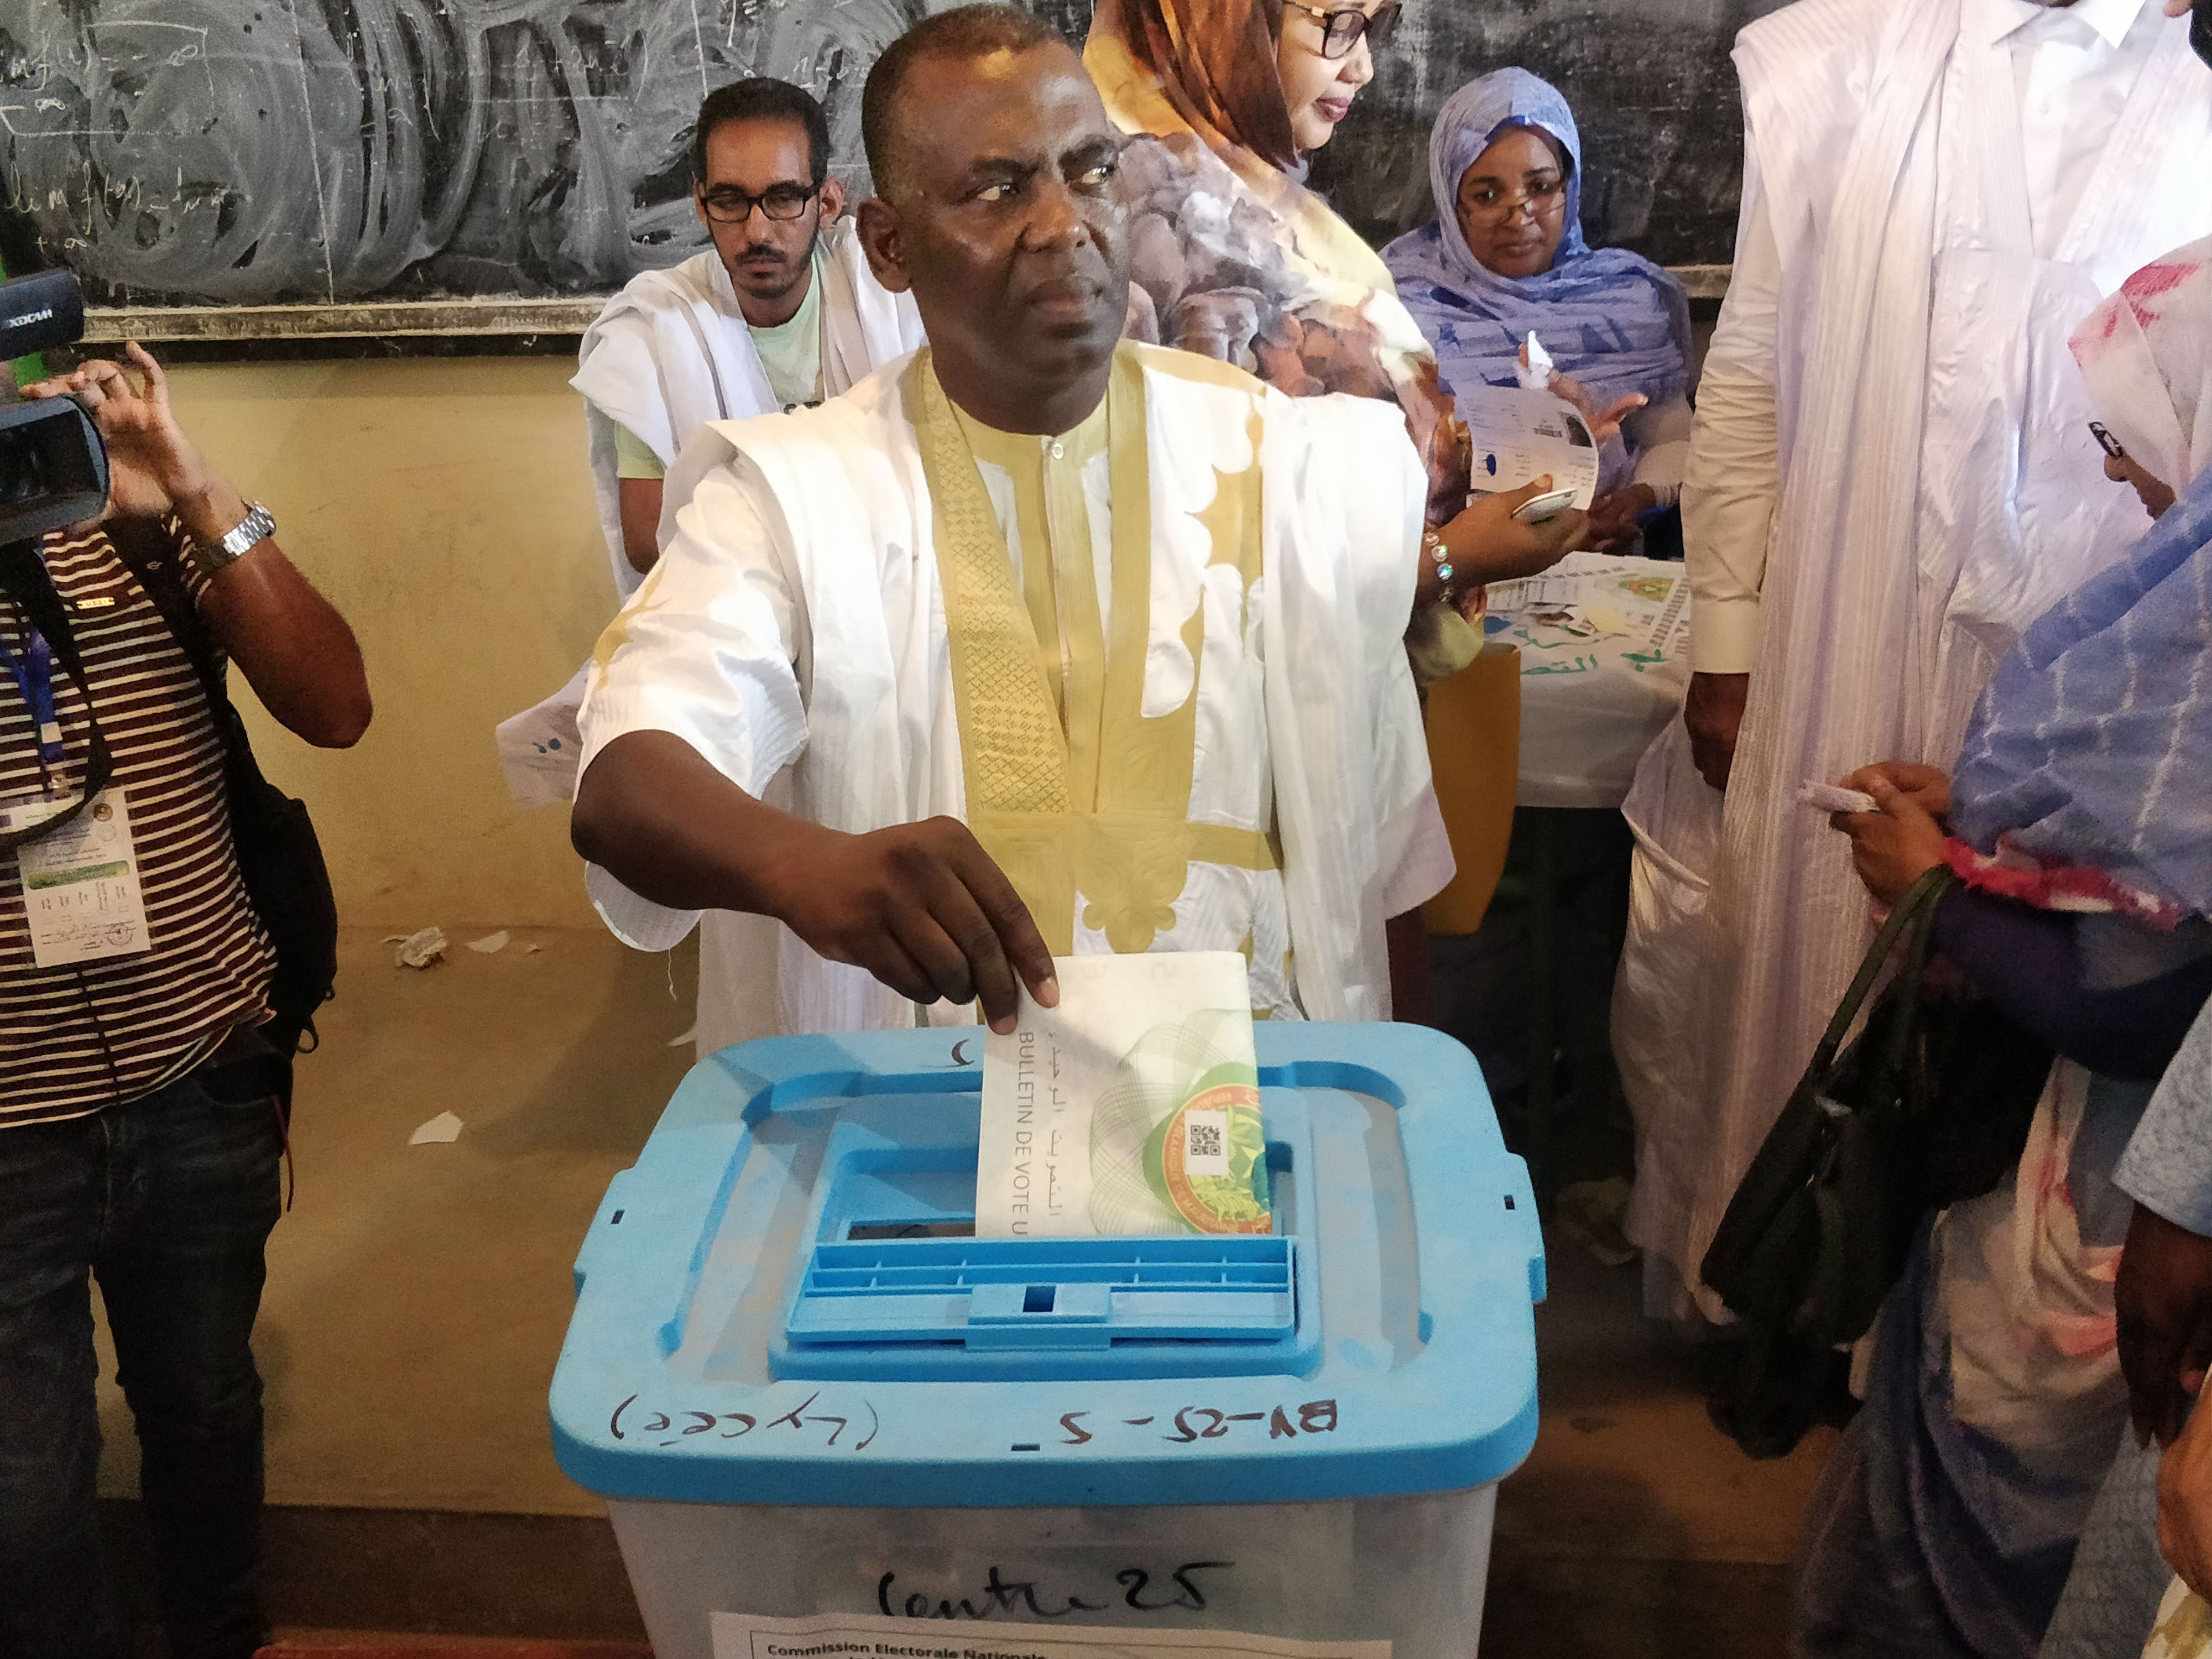 Biram Dah Abeid casts his vote in a polling station in Nouakchott (MEE/Amandla Thomas-Johnson)